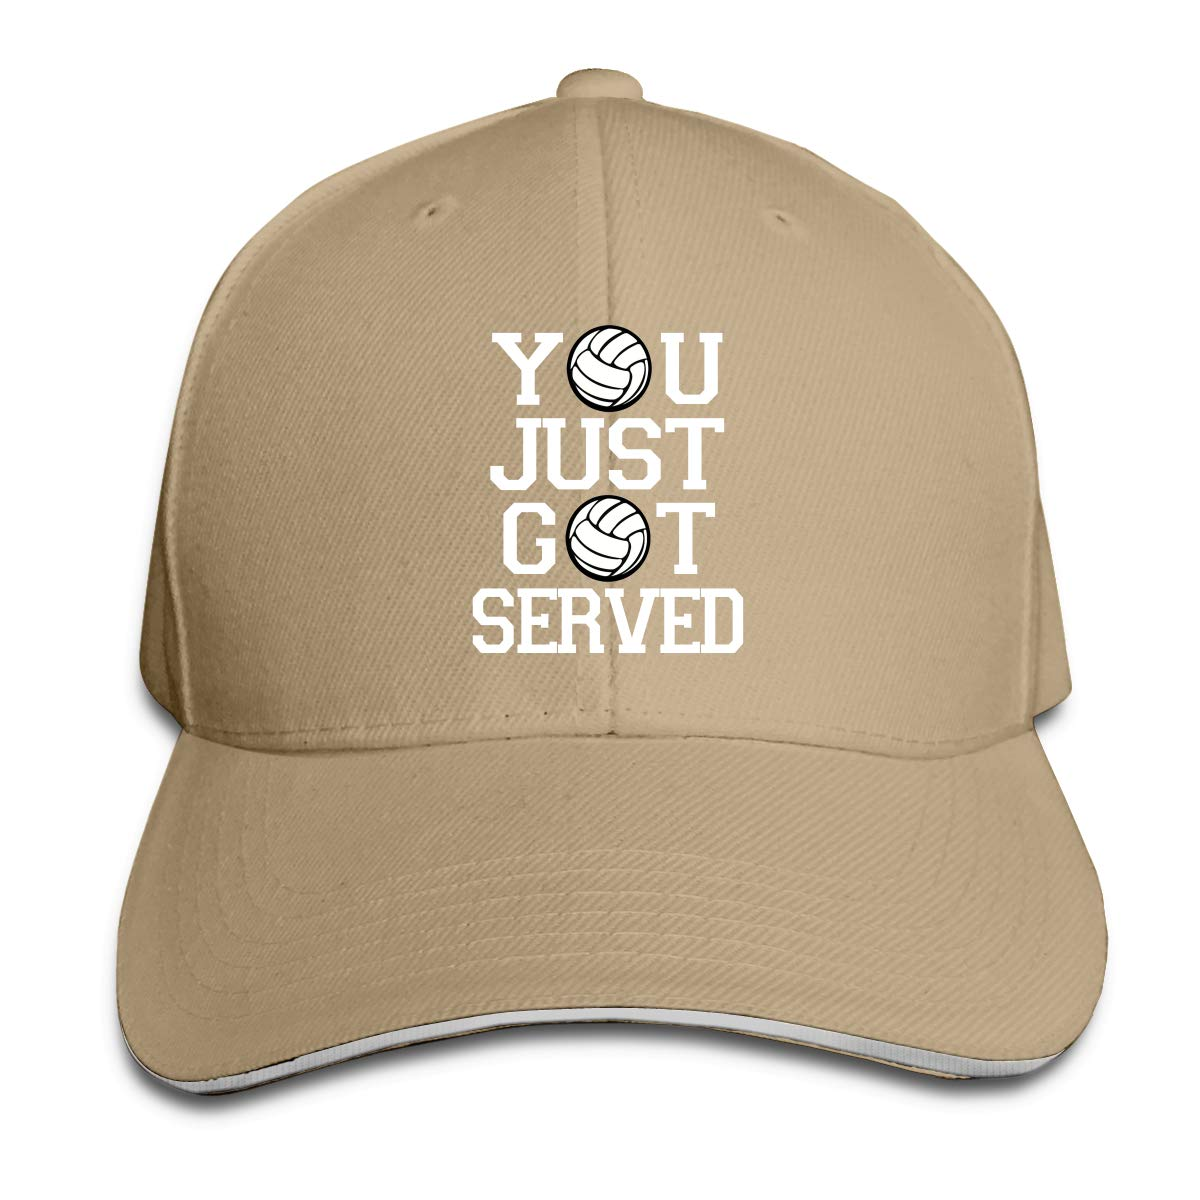 WFIRE Adult Baseball Caps You Just Got Served Volleyball Custom Adjustable Sandwich Cap Casquette Hats